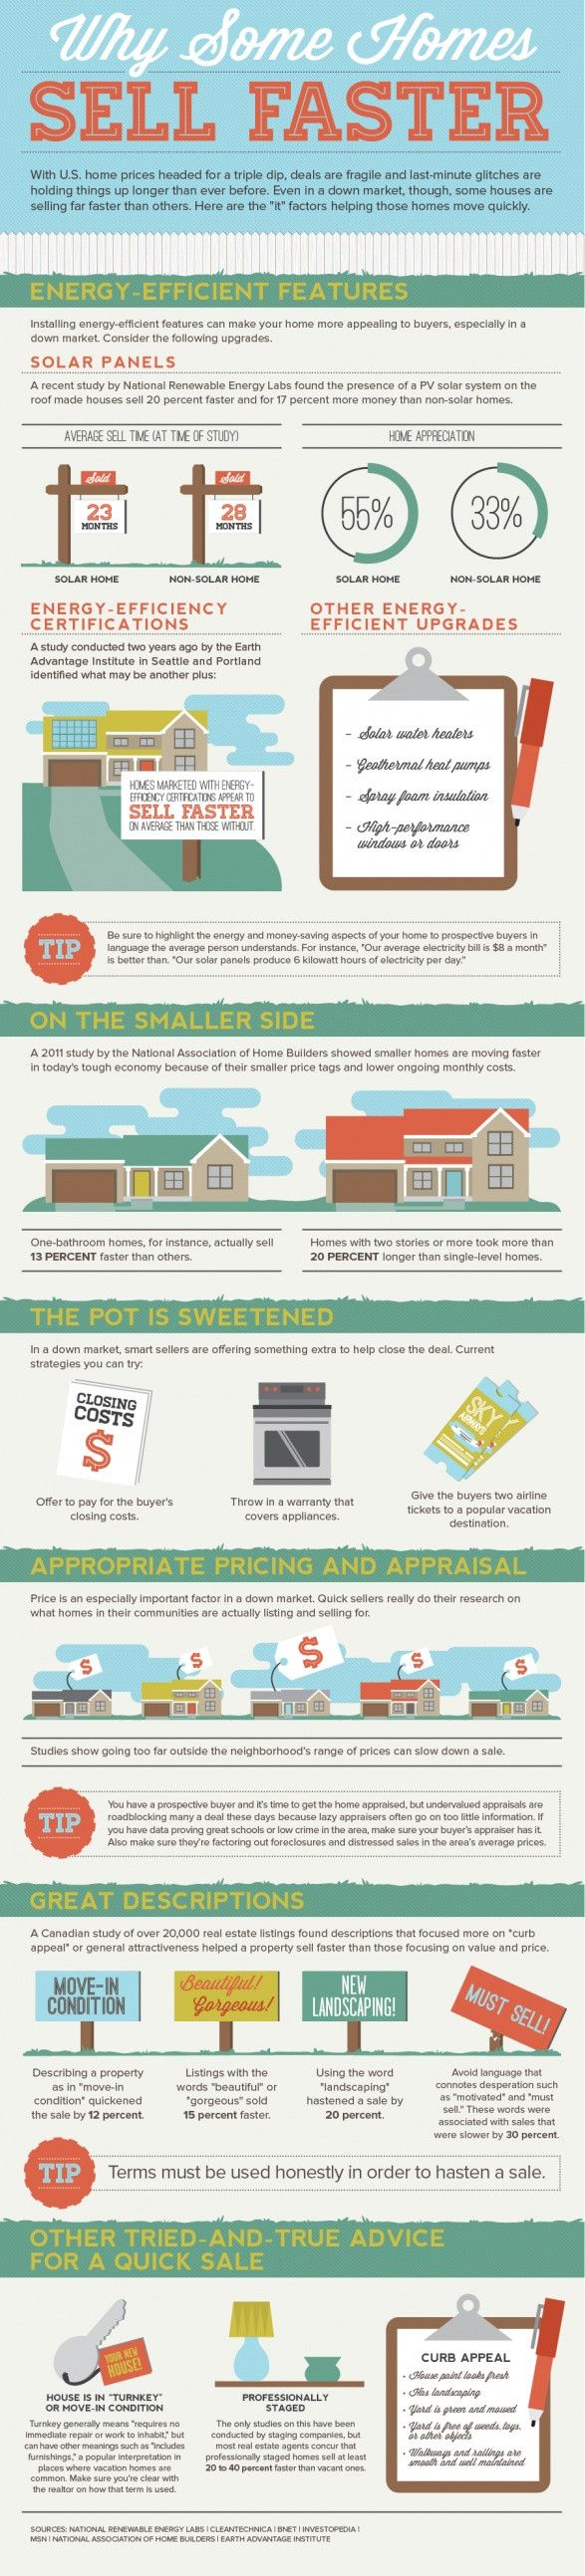 Why Some Homes Sell Faster #infographic #RealEstate #HomeImprovement